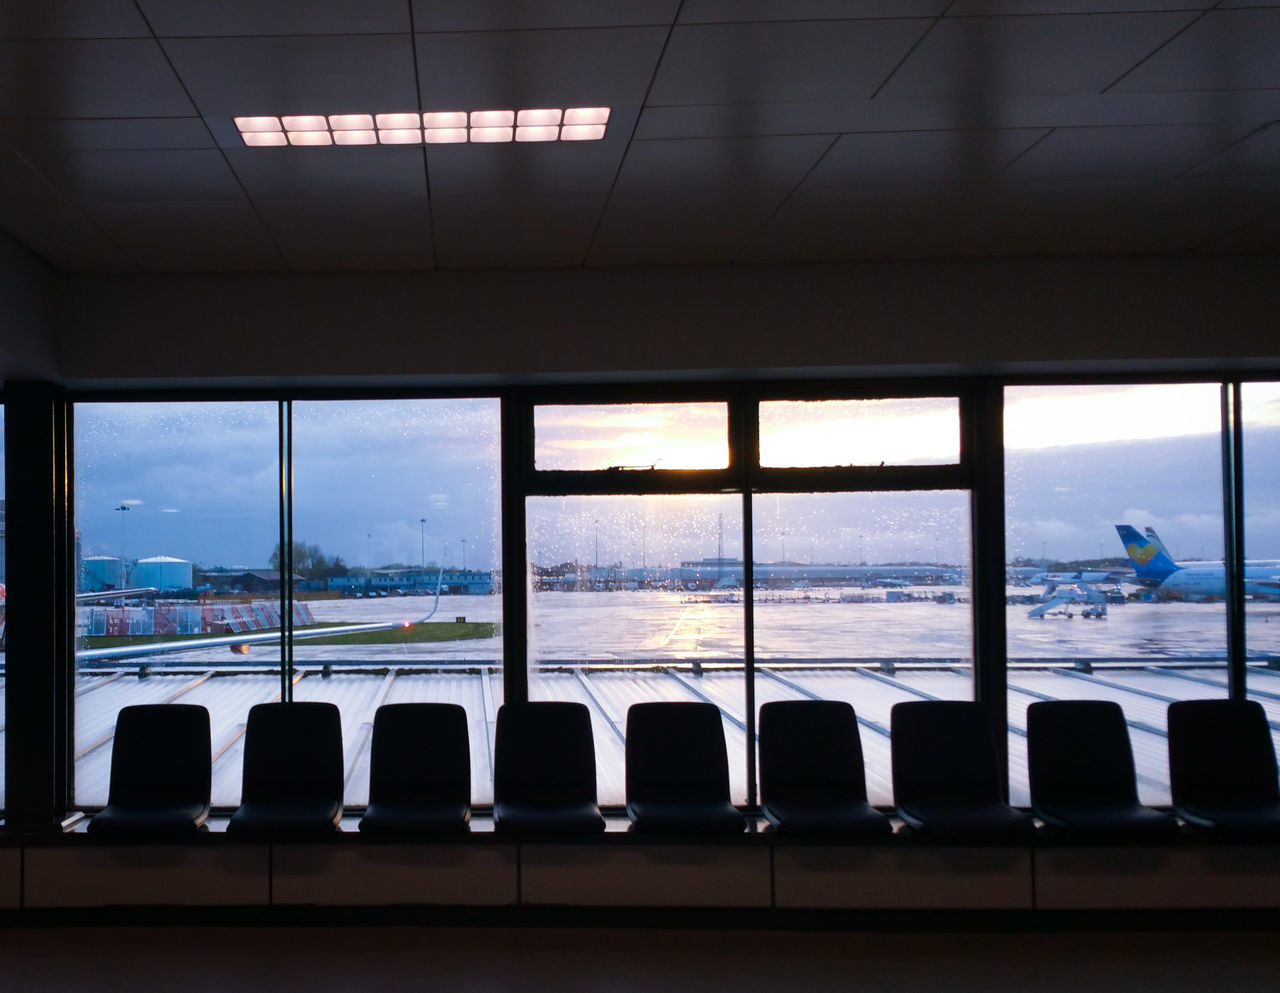 Window Indoors  Looking Through Window Architecture Travel Destinations Cityscape City Day No People Sky Airport Manchester Planes Aircraft Travel Waiting Sunlight Holiday Vacations Destination Airlines